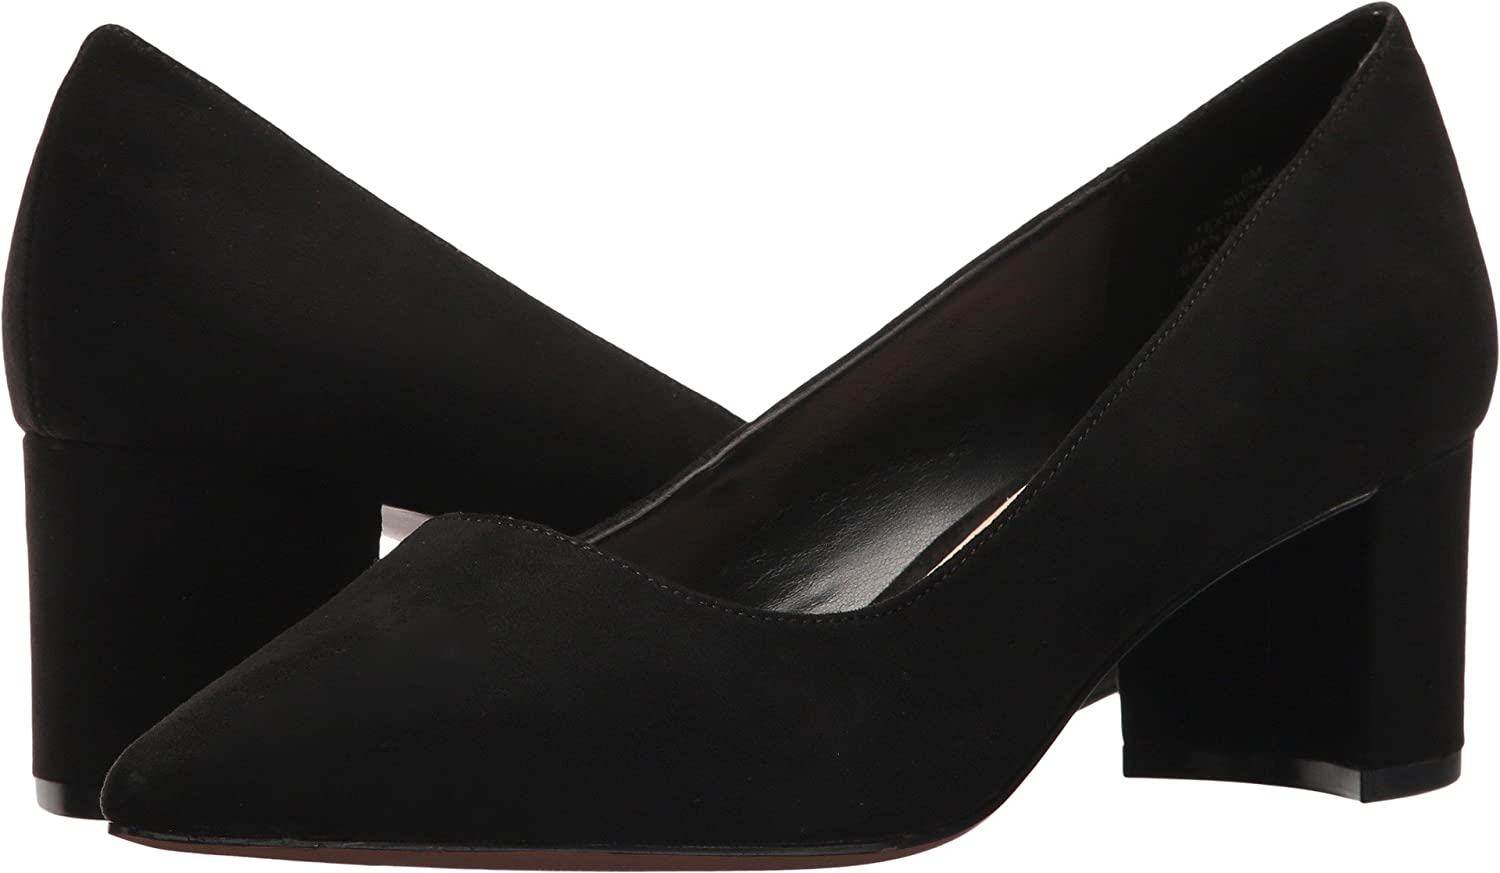 Nine West Womens IKE Black